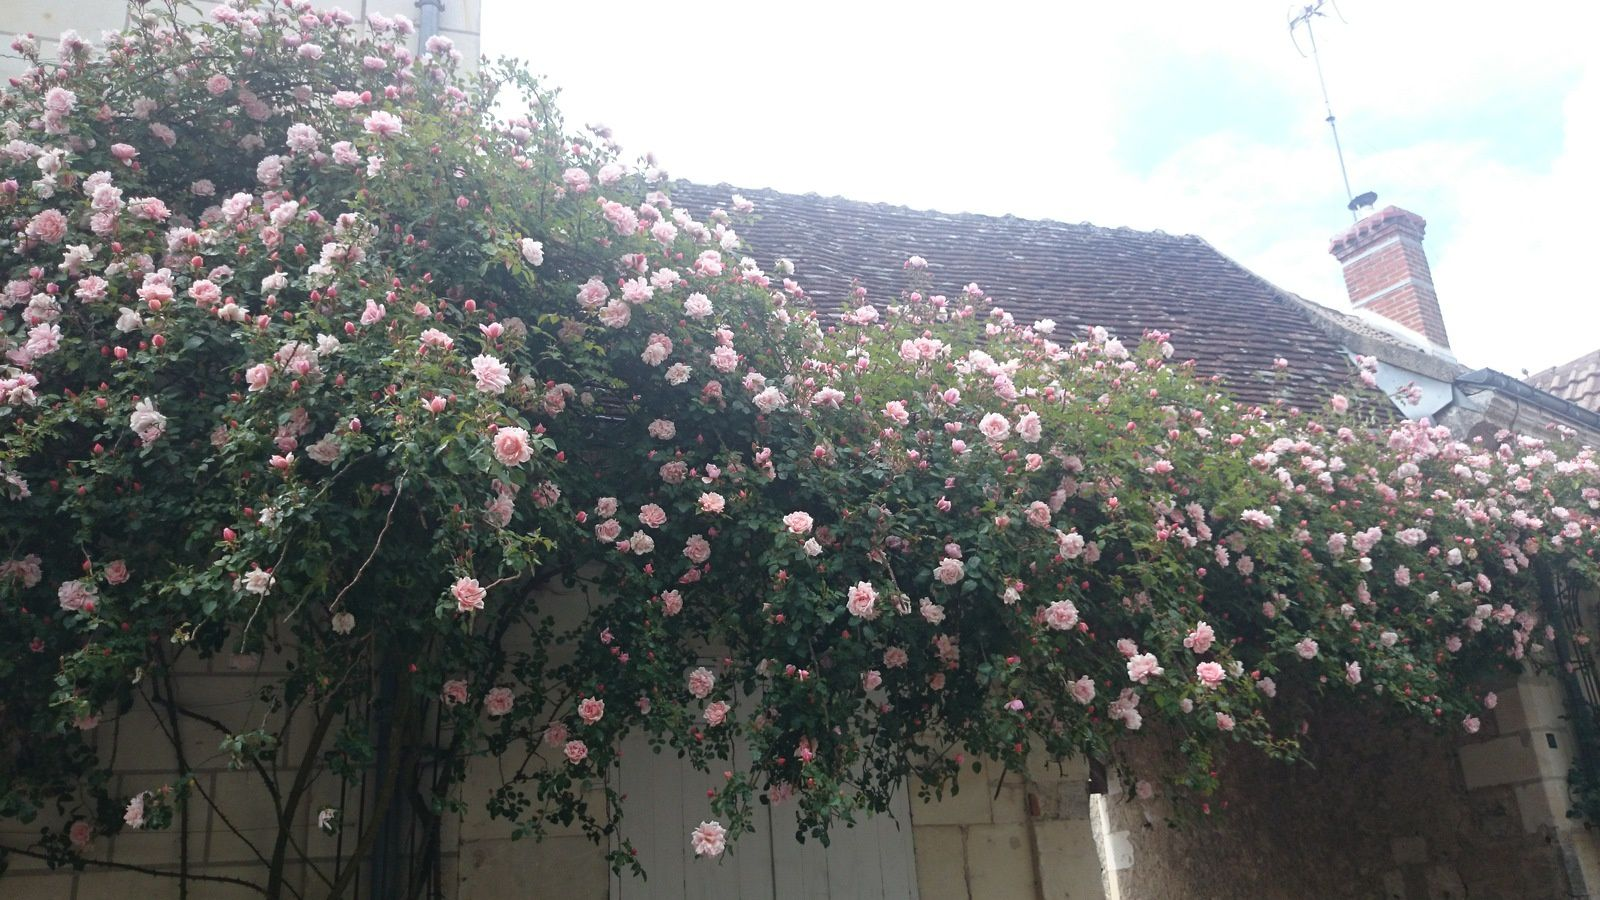 CLICK ON THE PICTURE TO SEE IT FULLY - The town's oldest rose bush planted in 1874